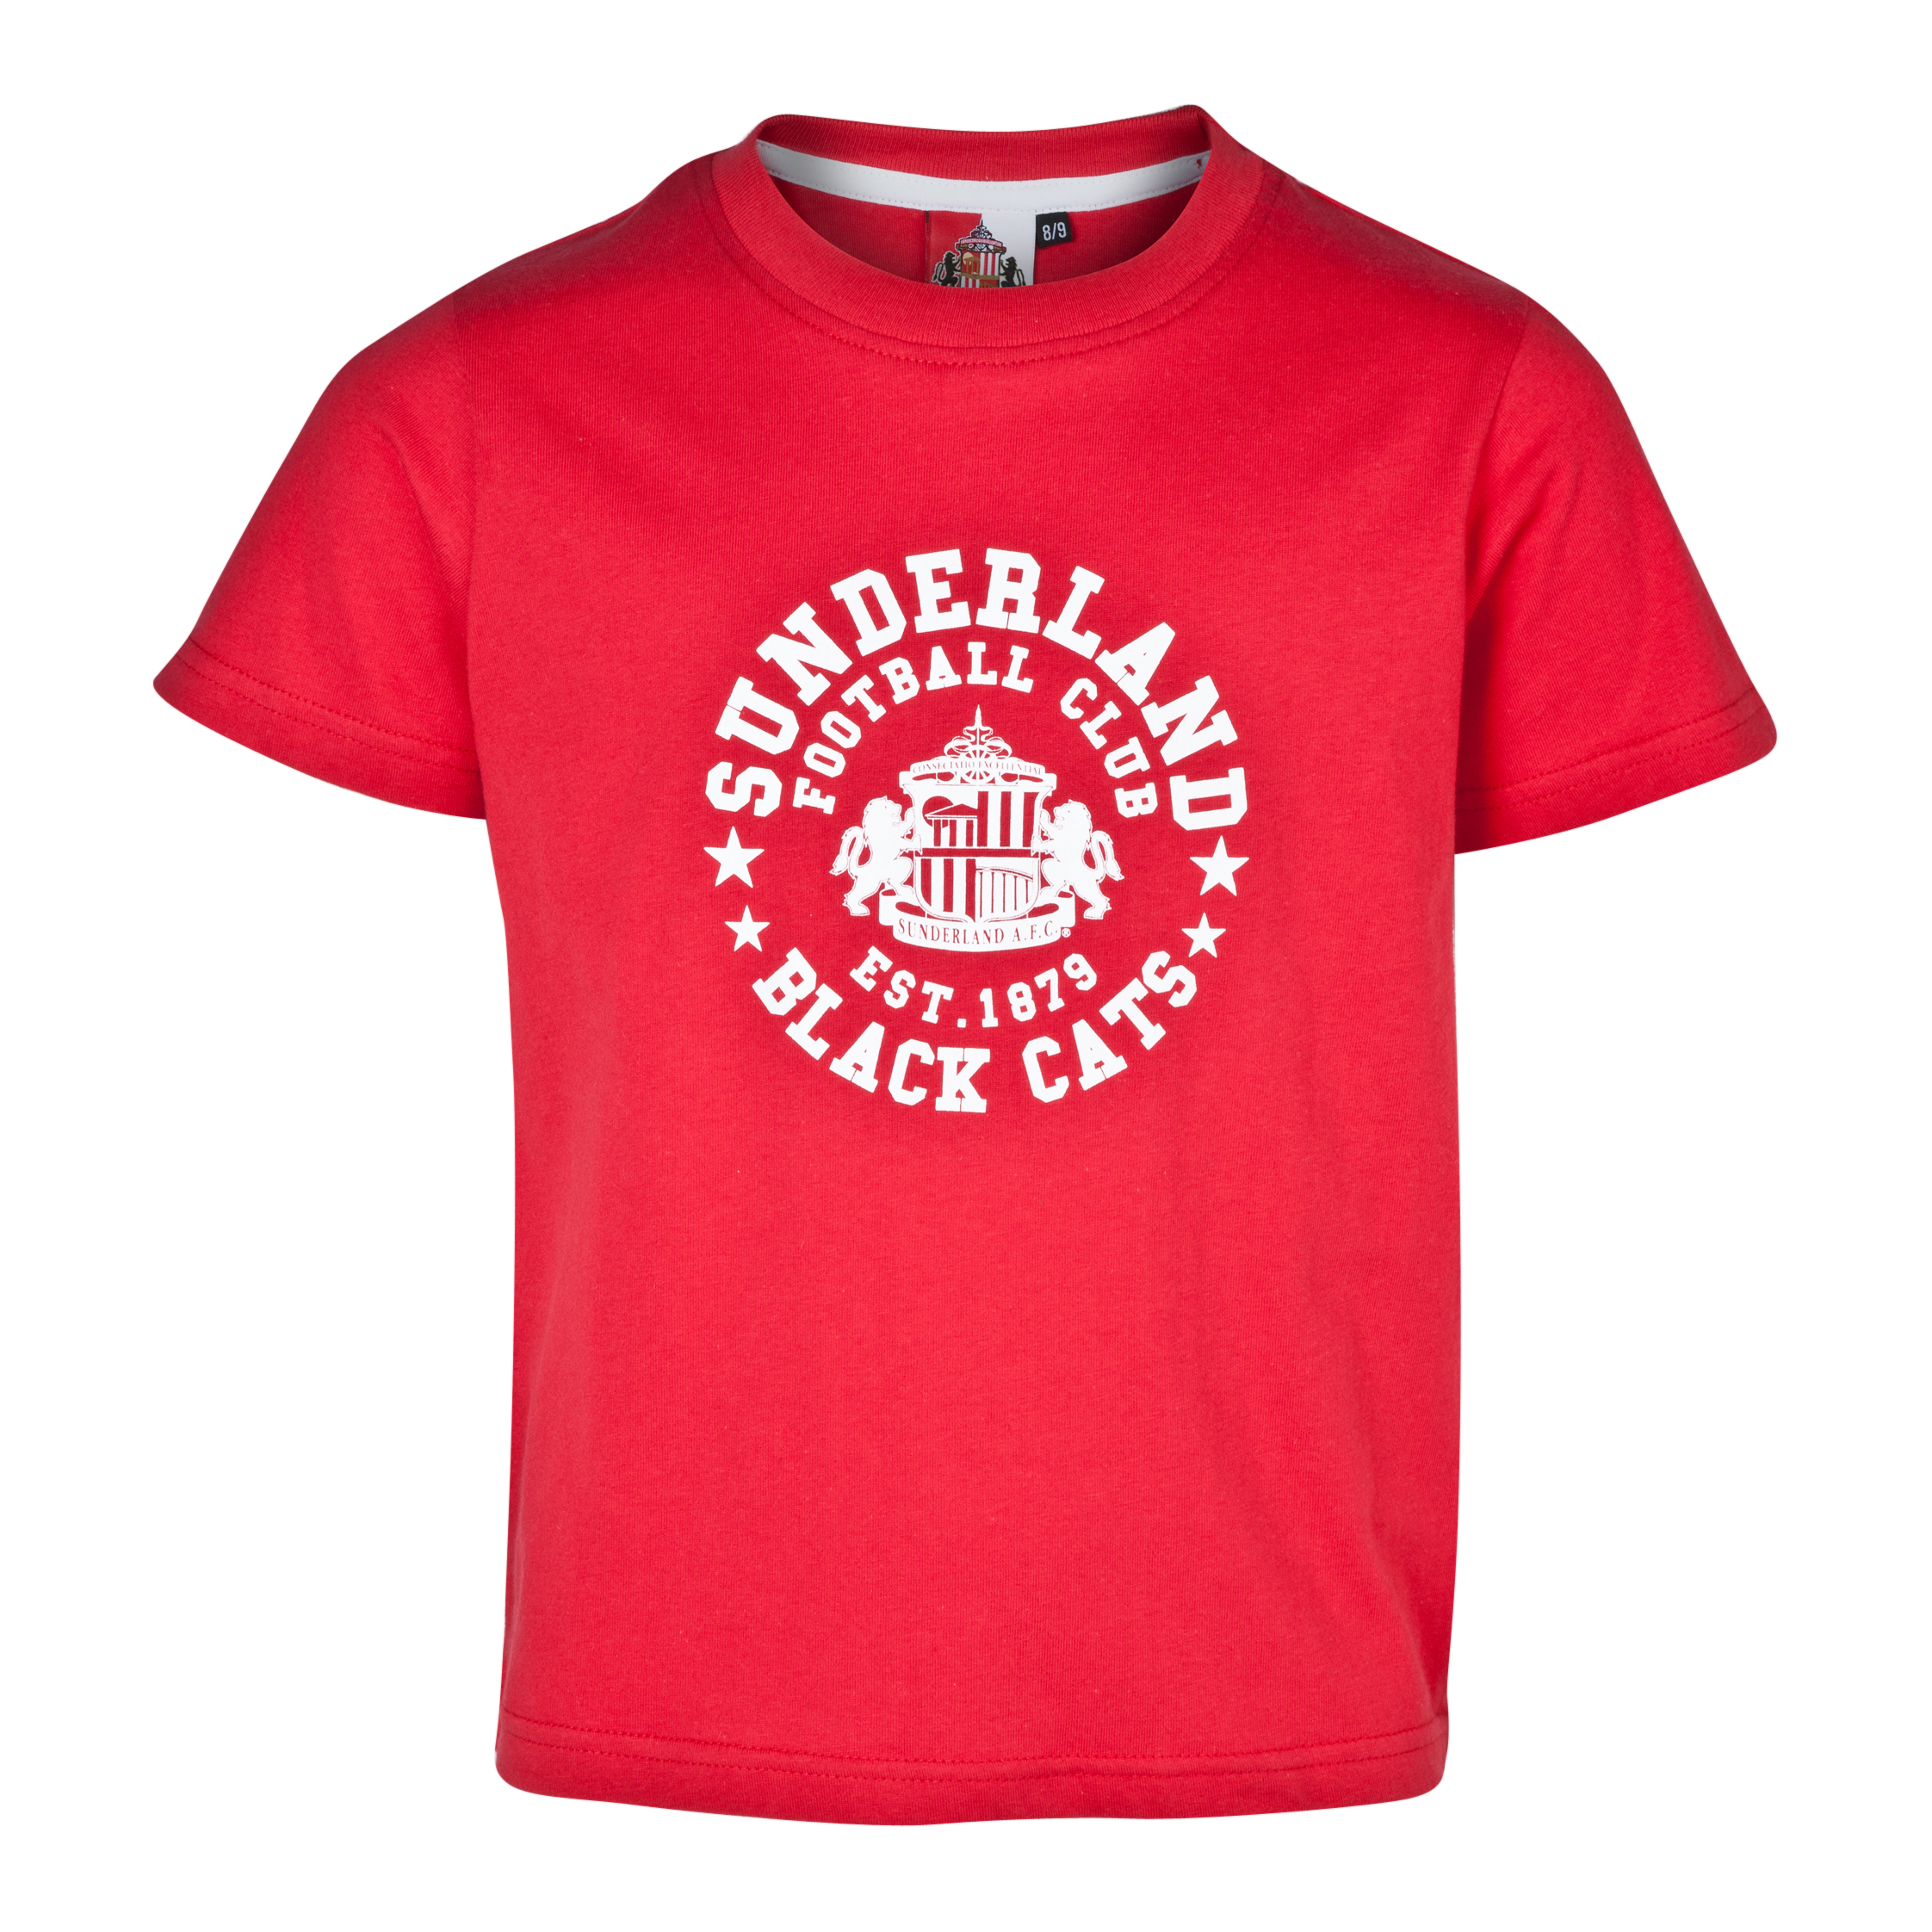 Sunderland Essentials RadiusT-Shirt - Older Boys Red